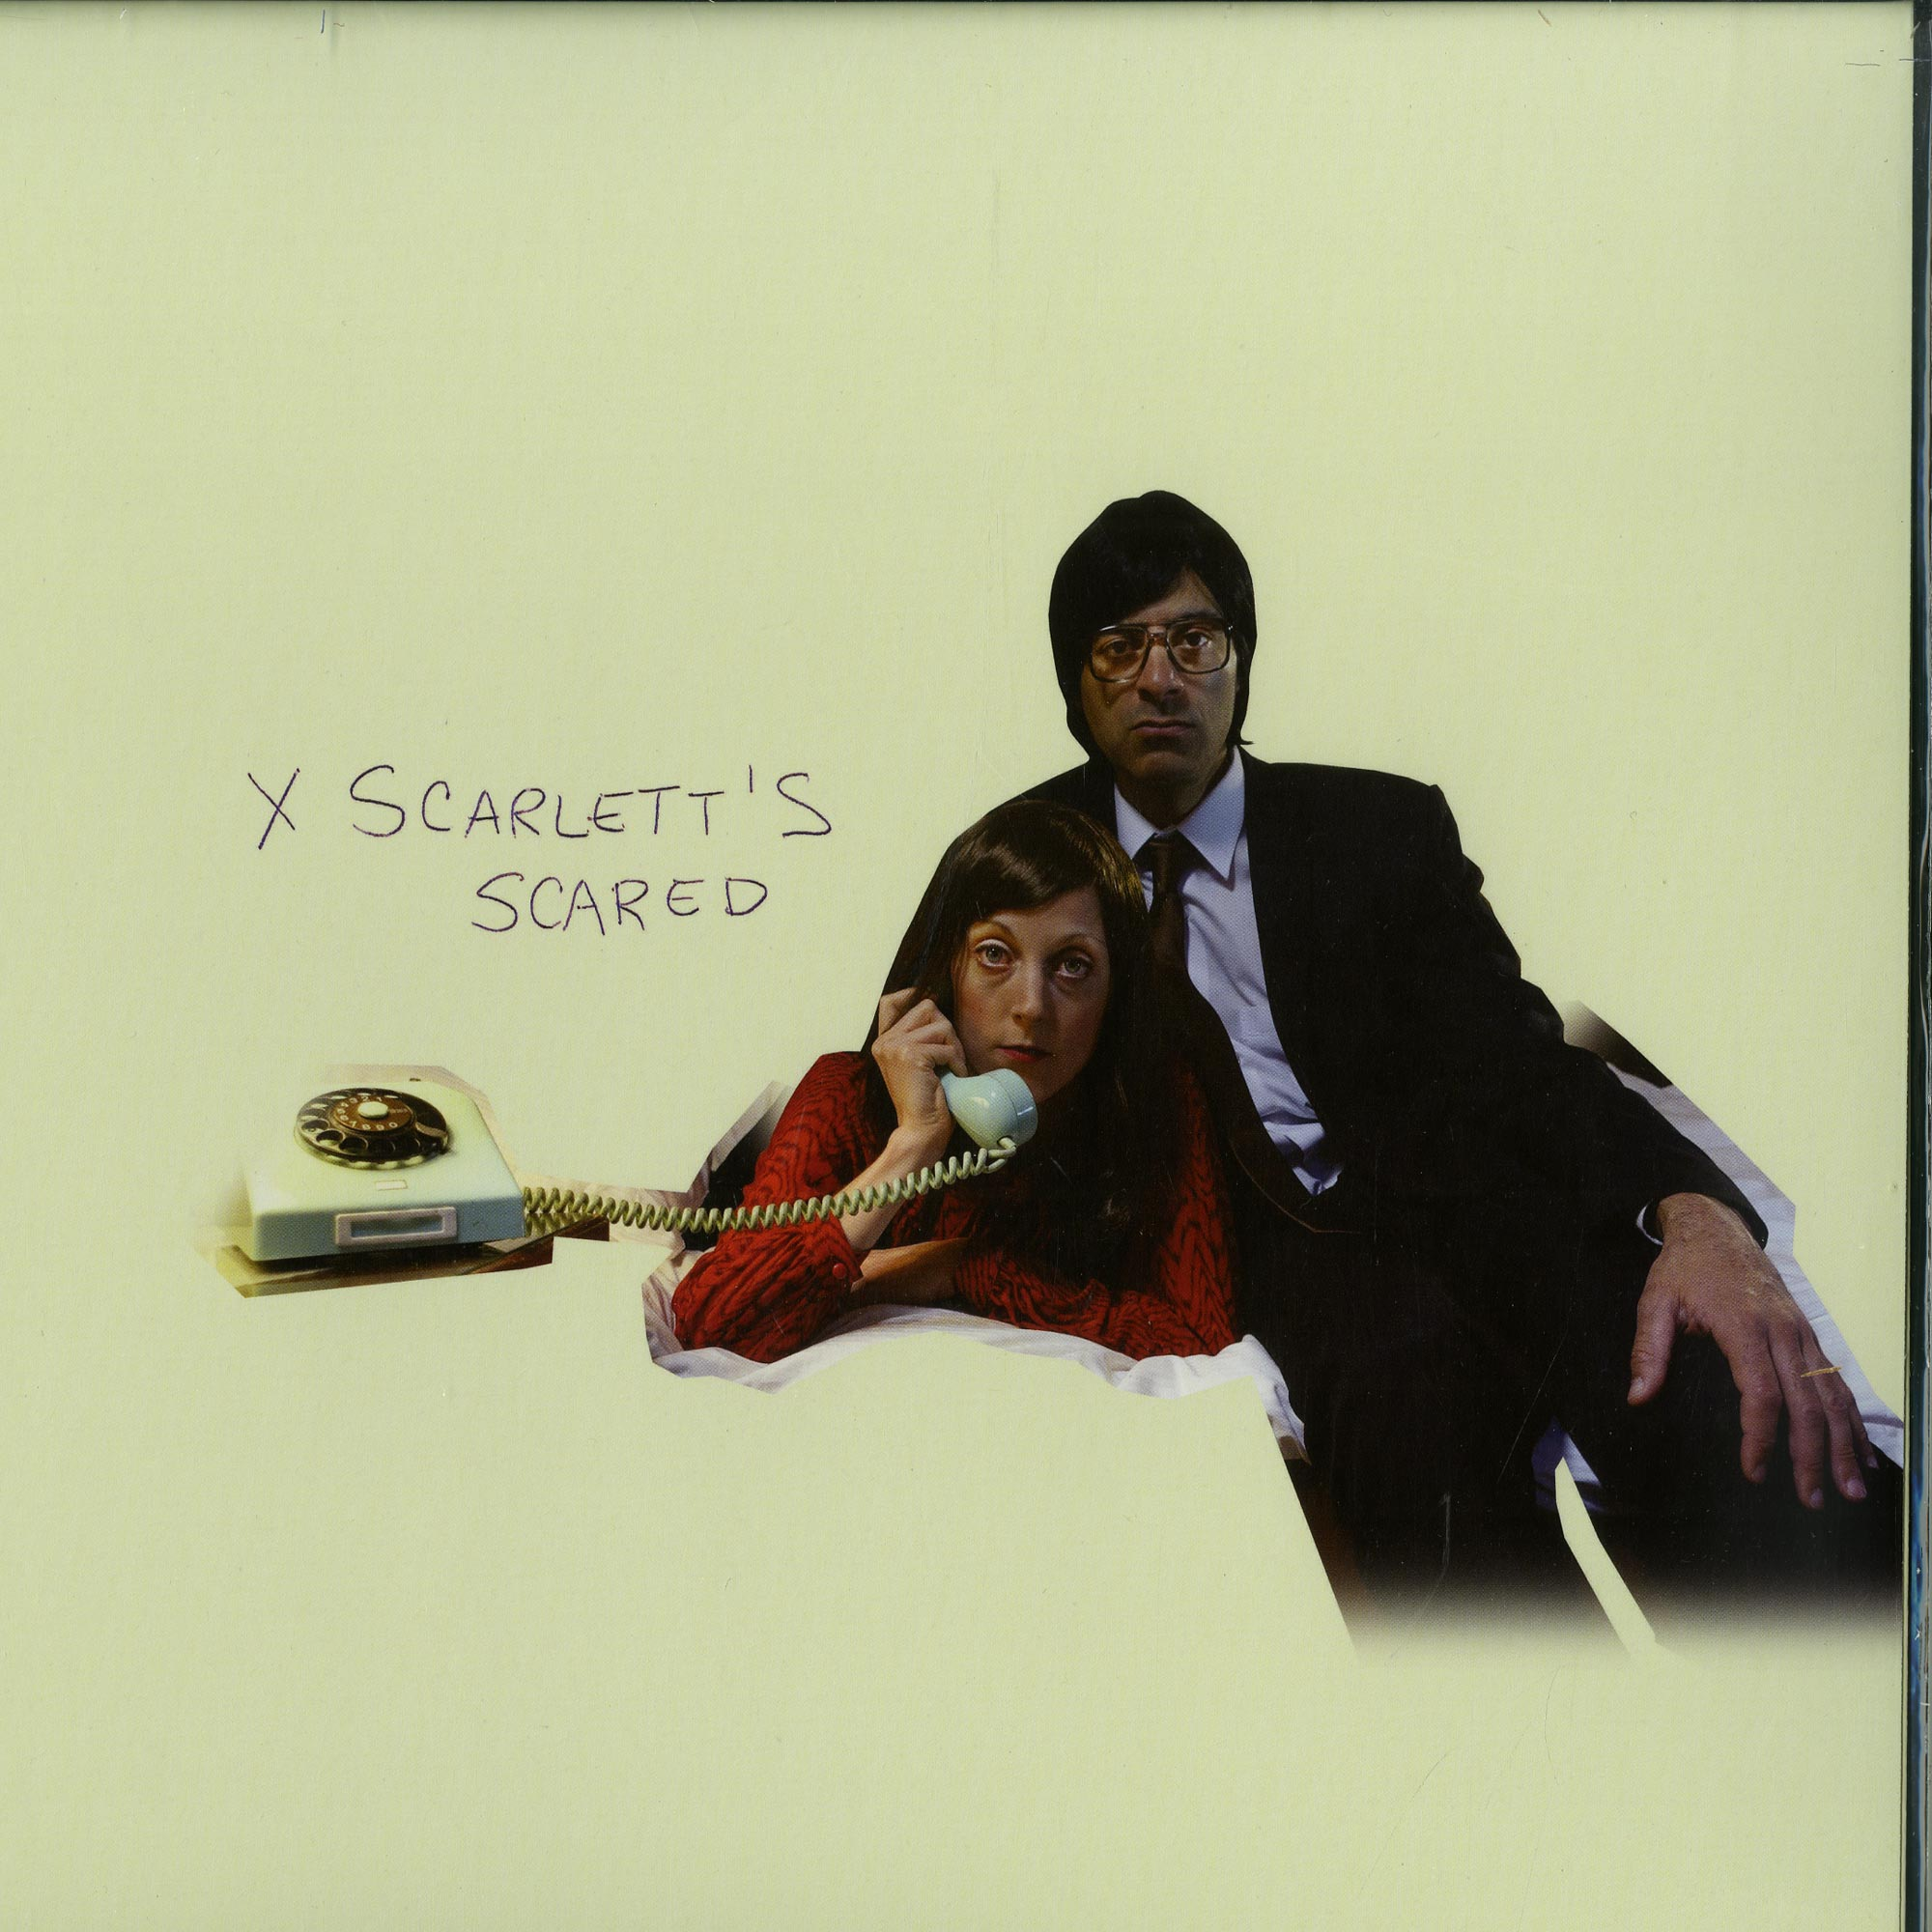 Scarletts Scared - SCARLETTS SCARED